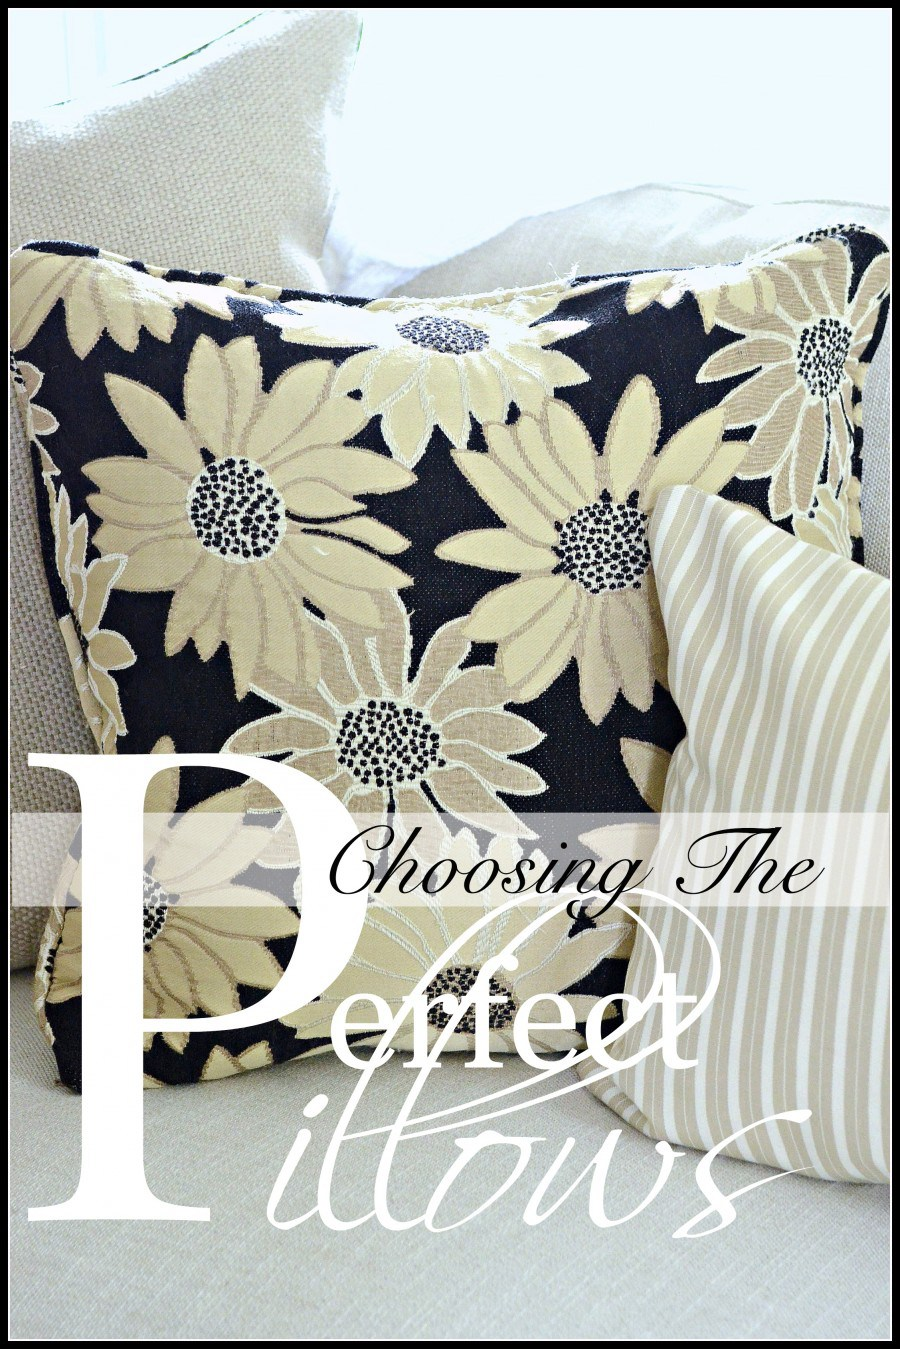 CHOOSING PERFECT PILLOWS-A guide for choosing the most perfect pillows for YOU!